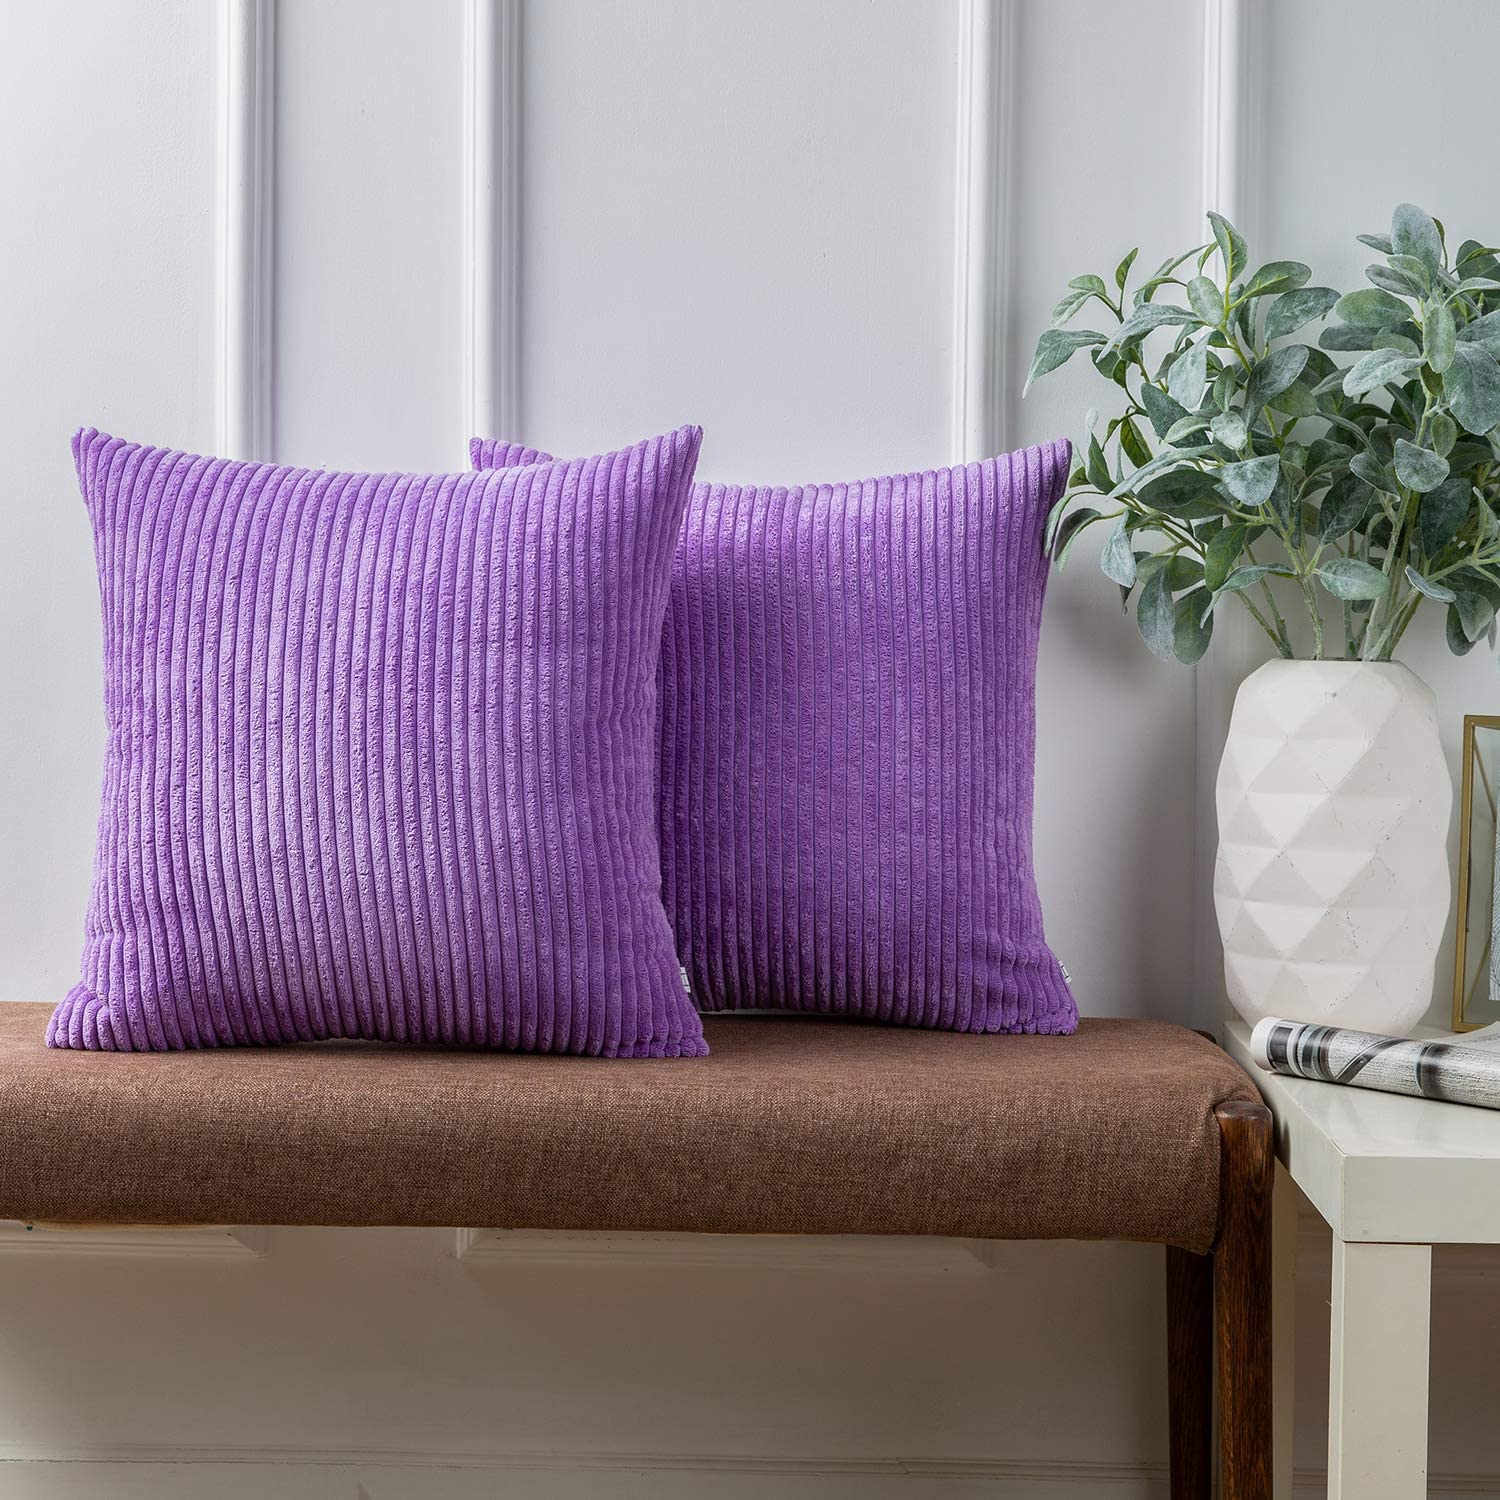 Ashler Pack of 2 Corduroy Soft Velvet Striped Solid Square Throw Pillow Covers Cushion Cases 18 x 18 inch Violet